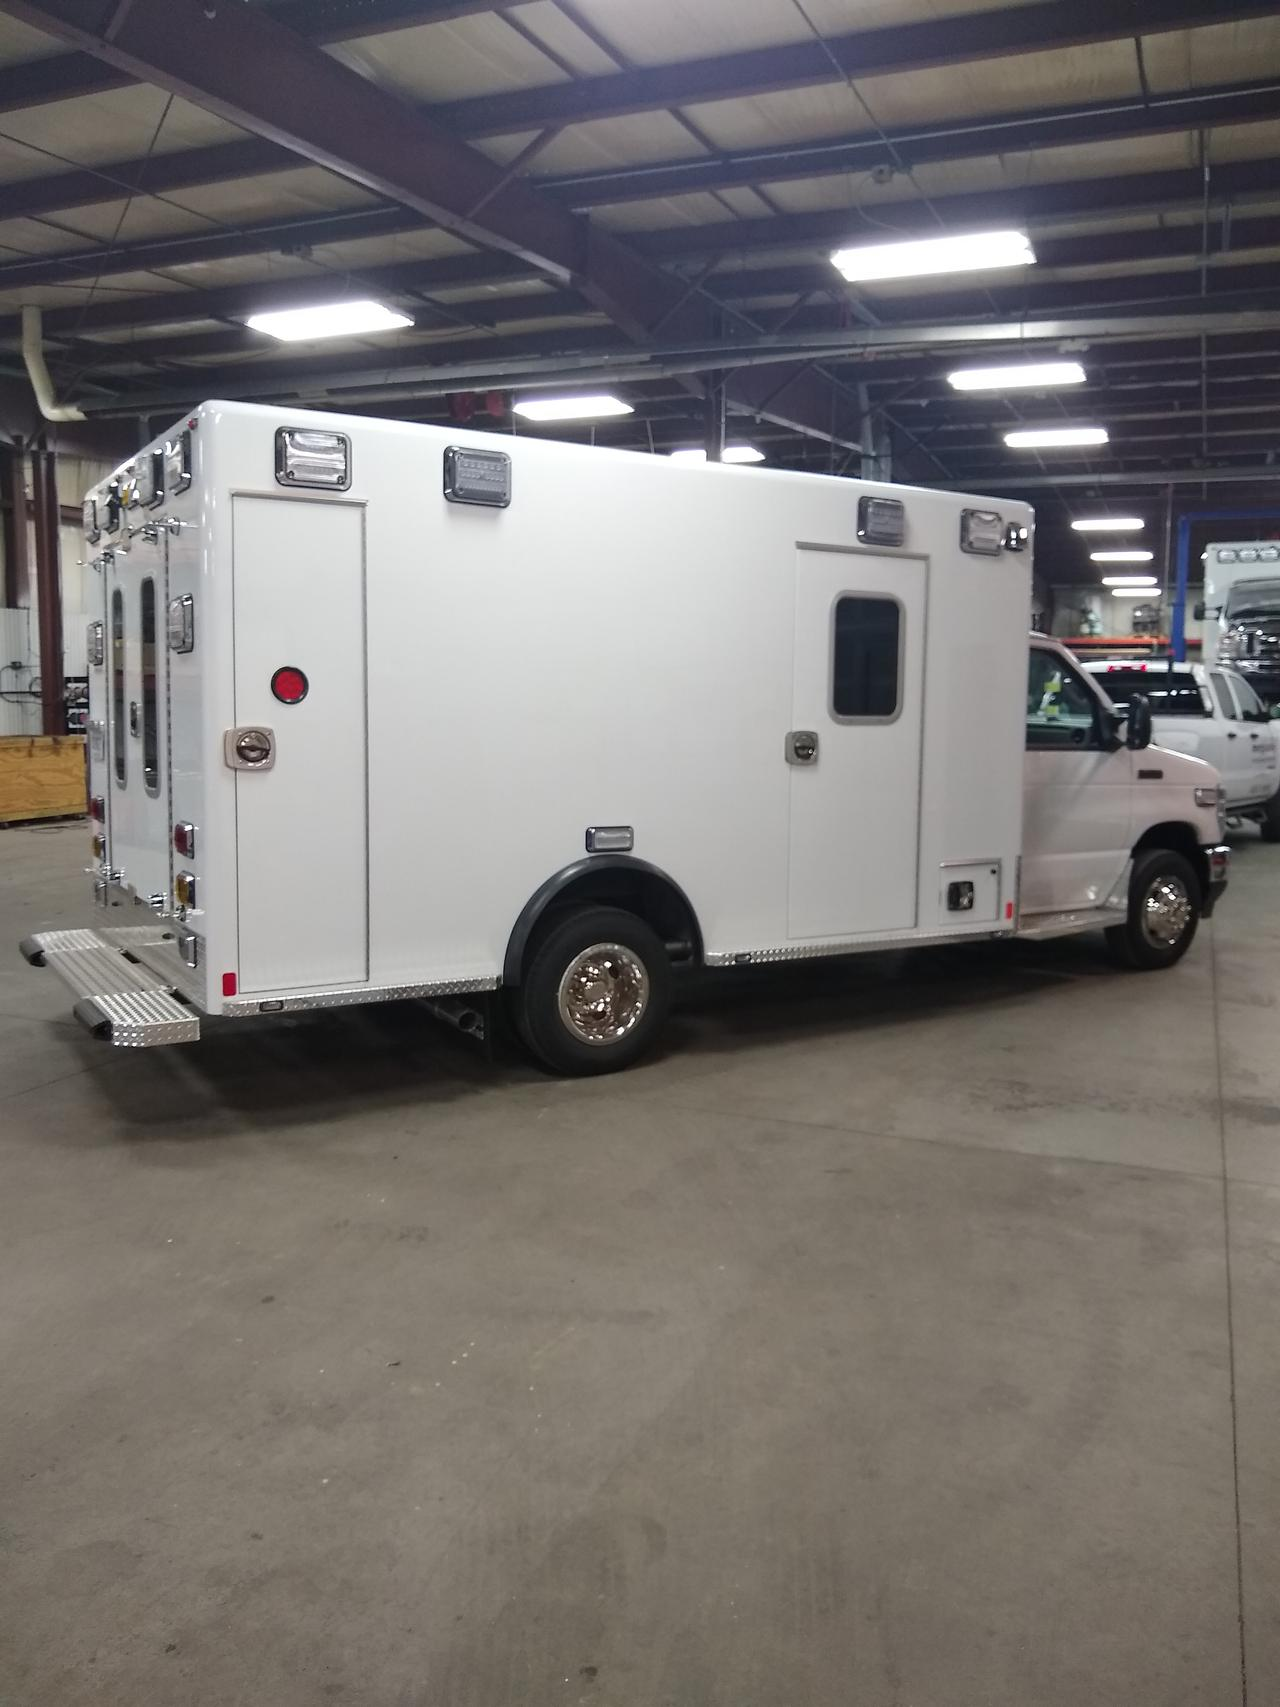 Get complete ambulance re-chassis in Saginaw, MI.